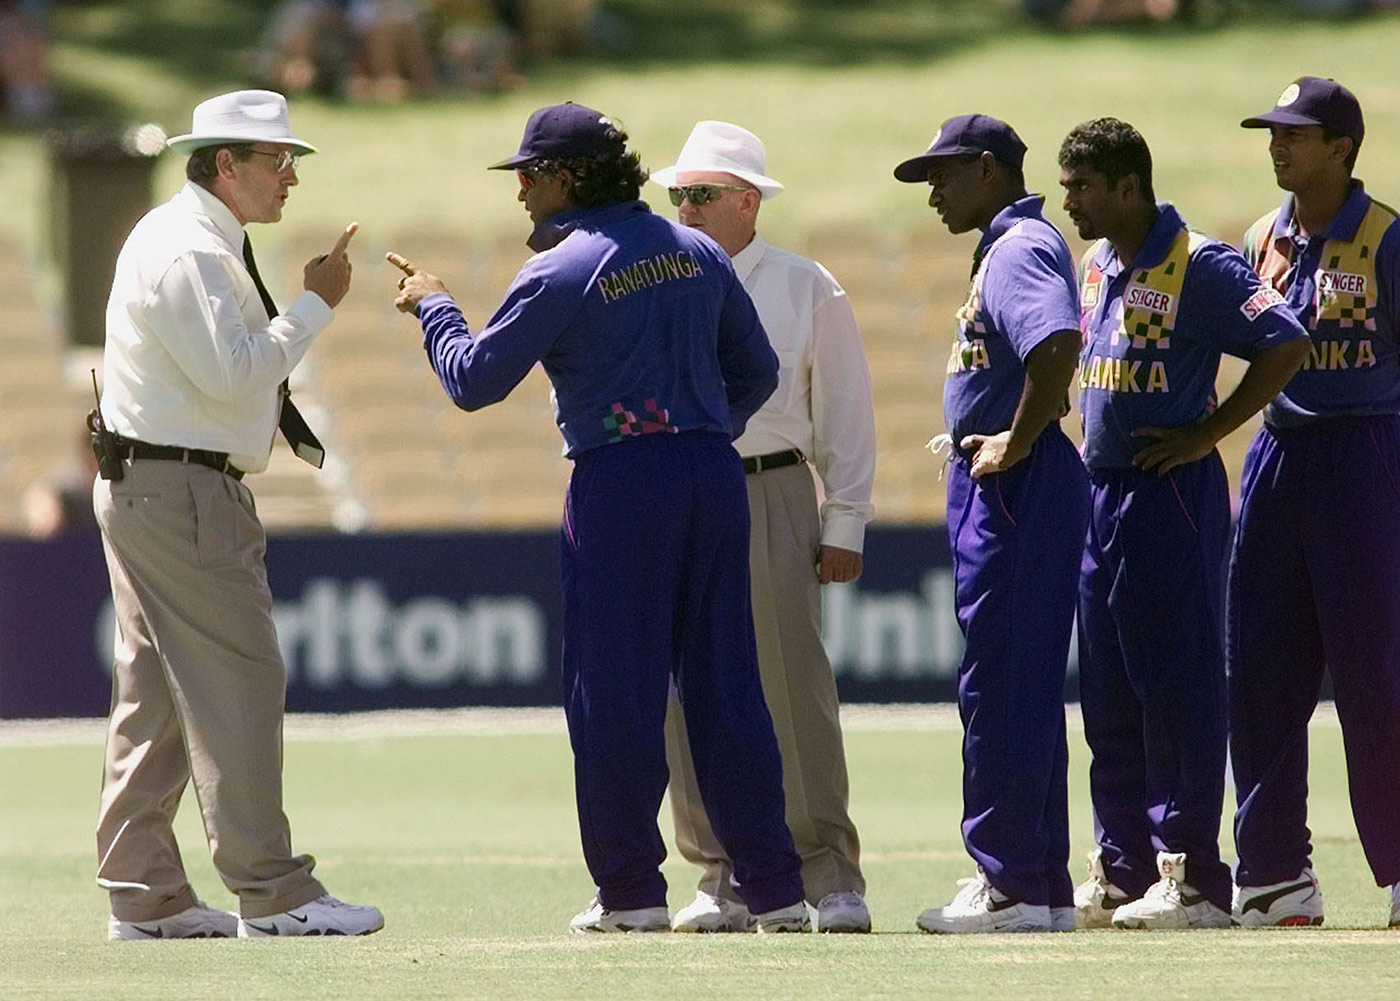 Two-finger game: Emerson and Ranatunga get into their digit-wagging argument in 1999